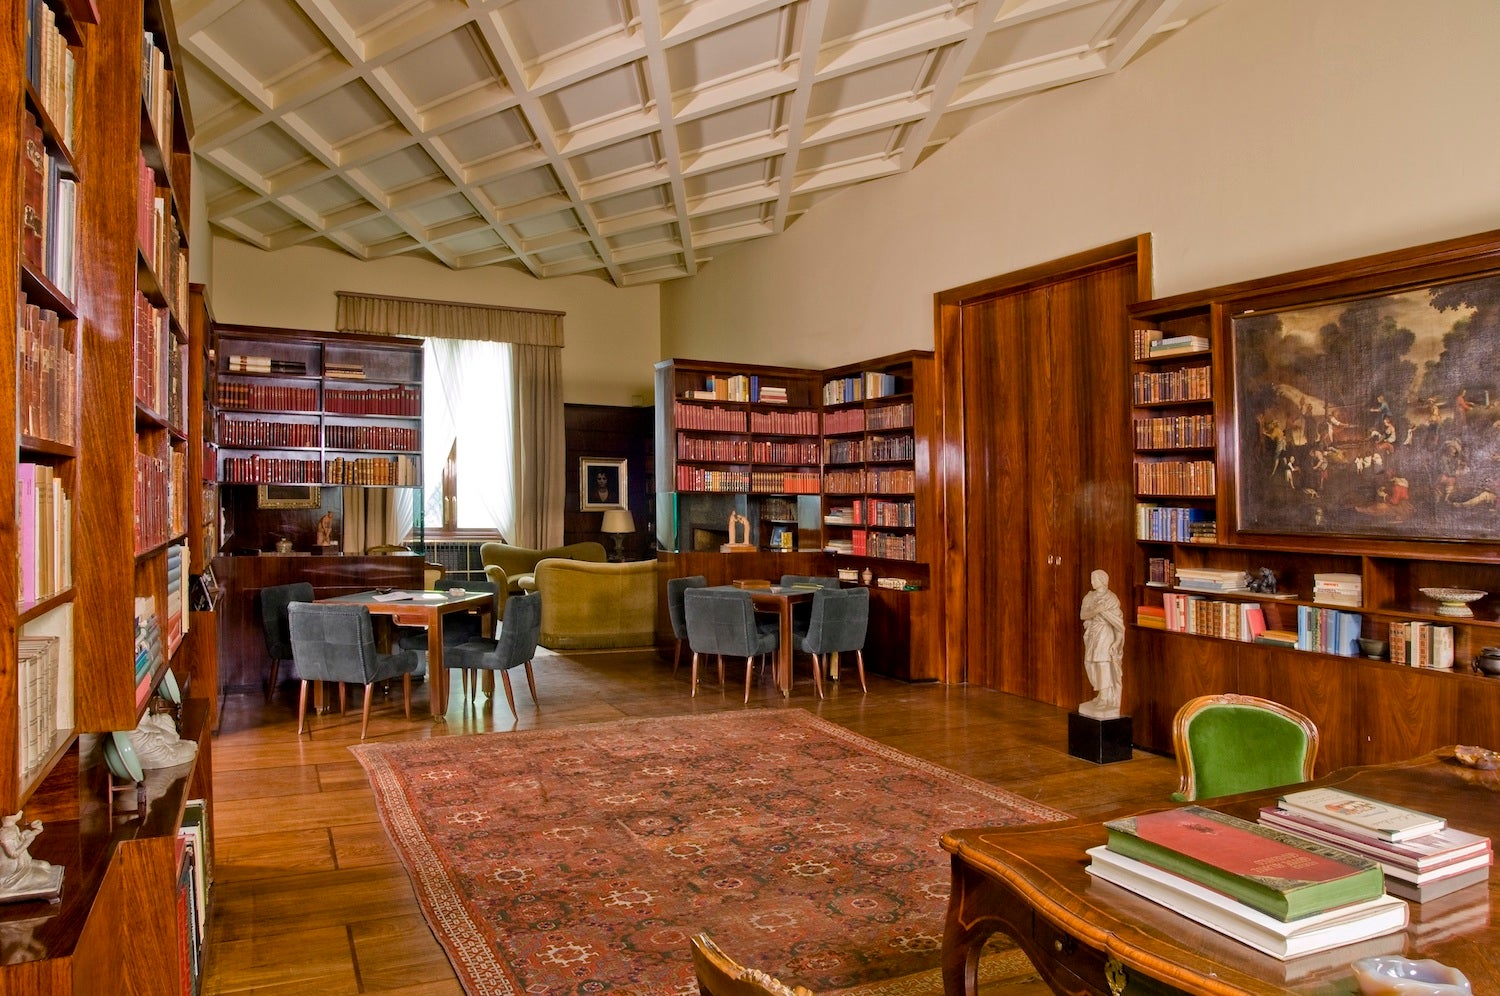 The library of Villa Necchi Campiglio